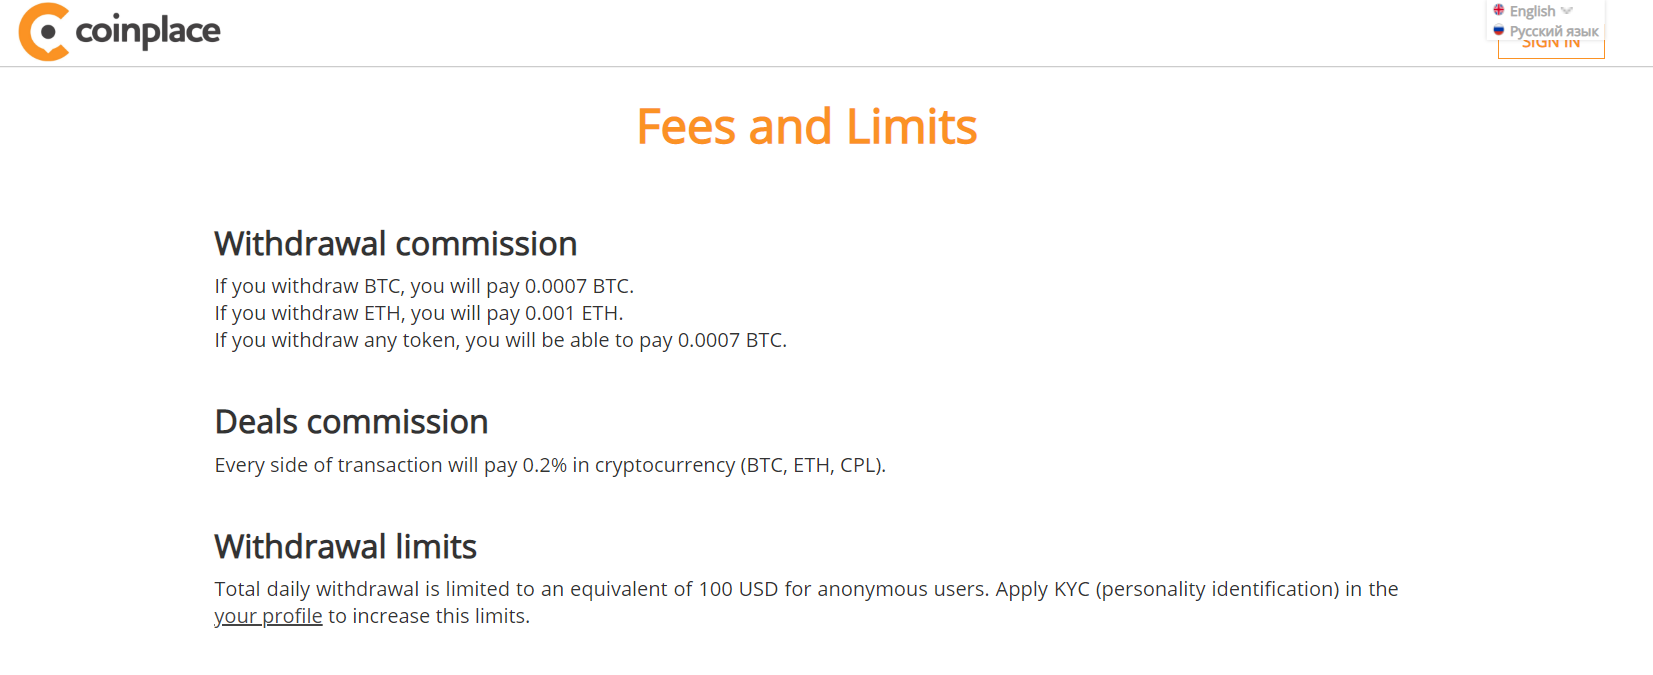 Coinplace Fees